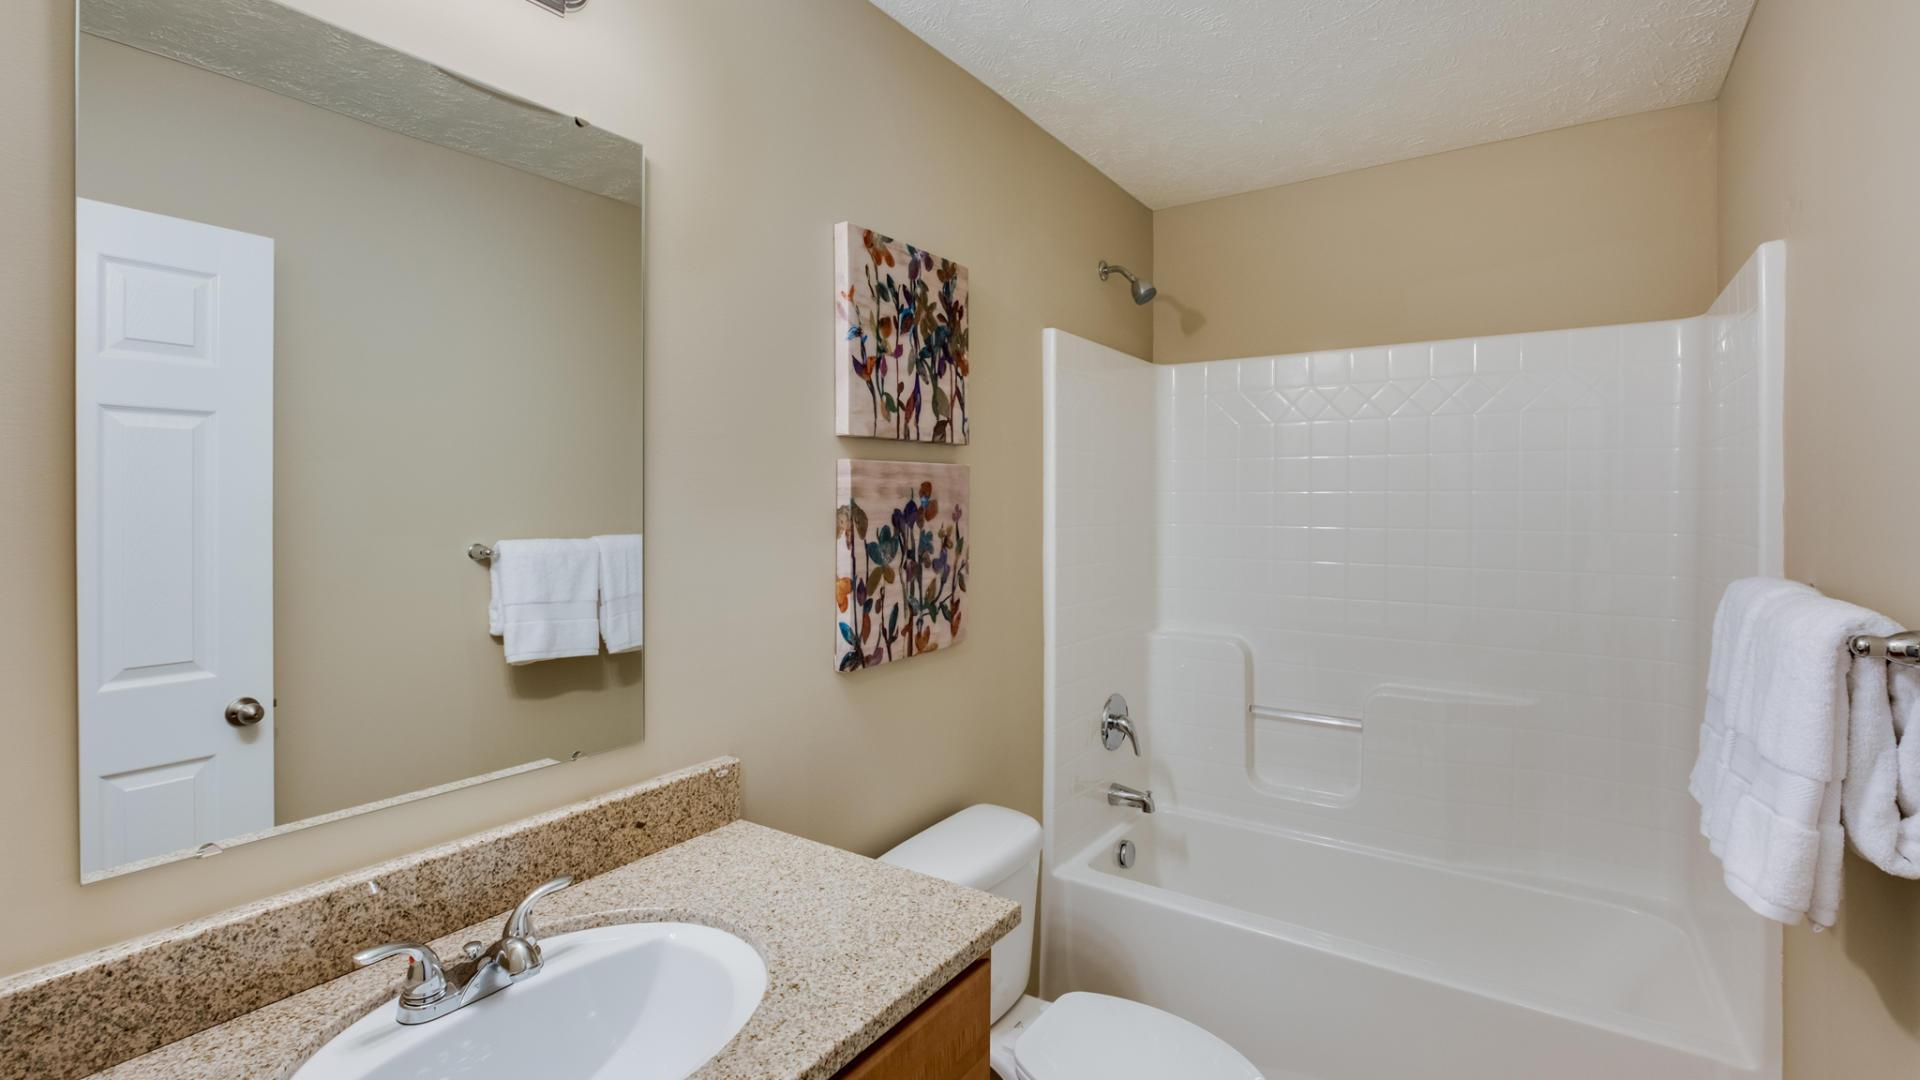 Bathroom featured in the Boston By Maronda Homes in Pittsburgh, PA